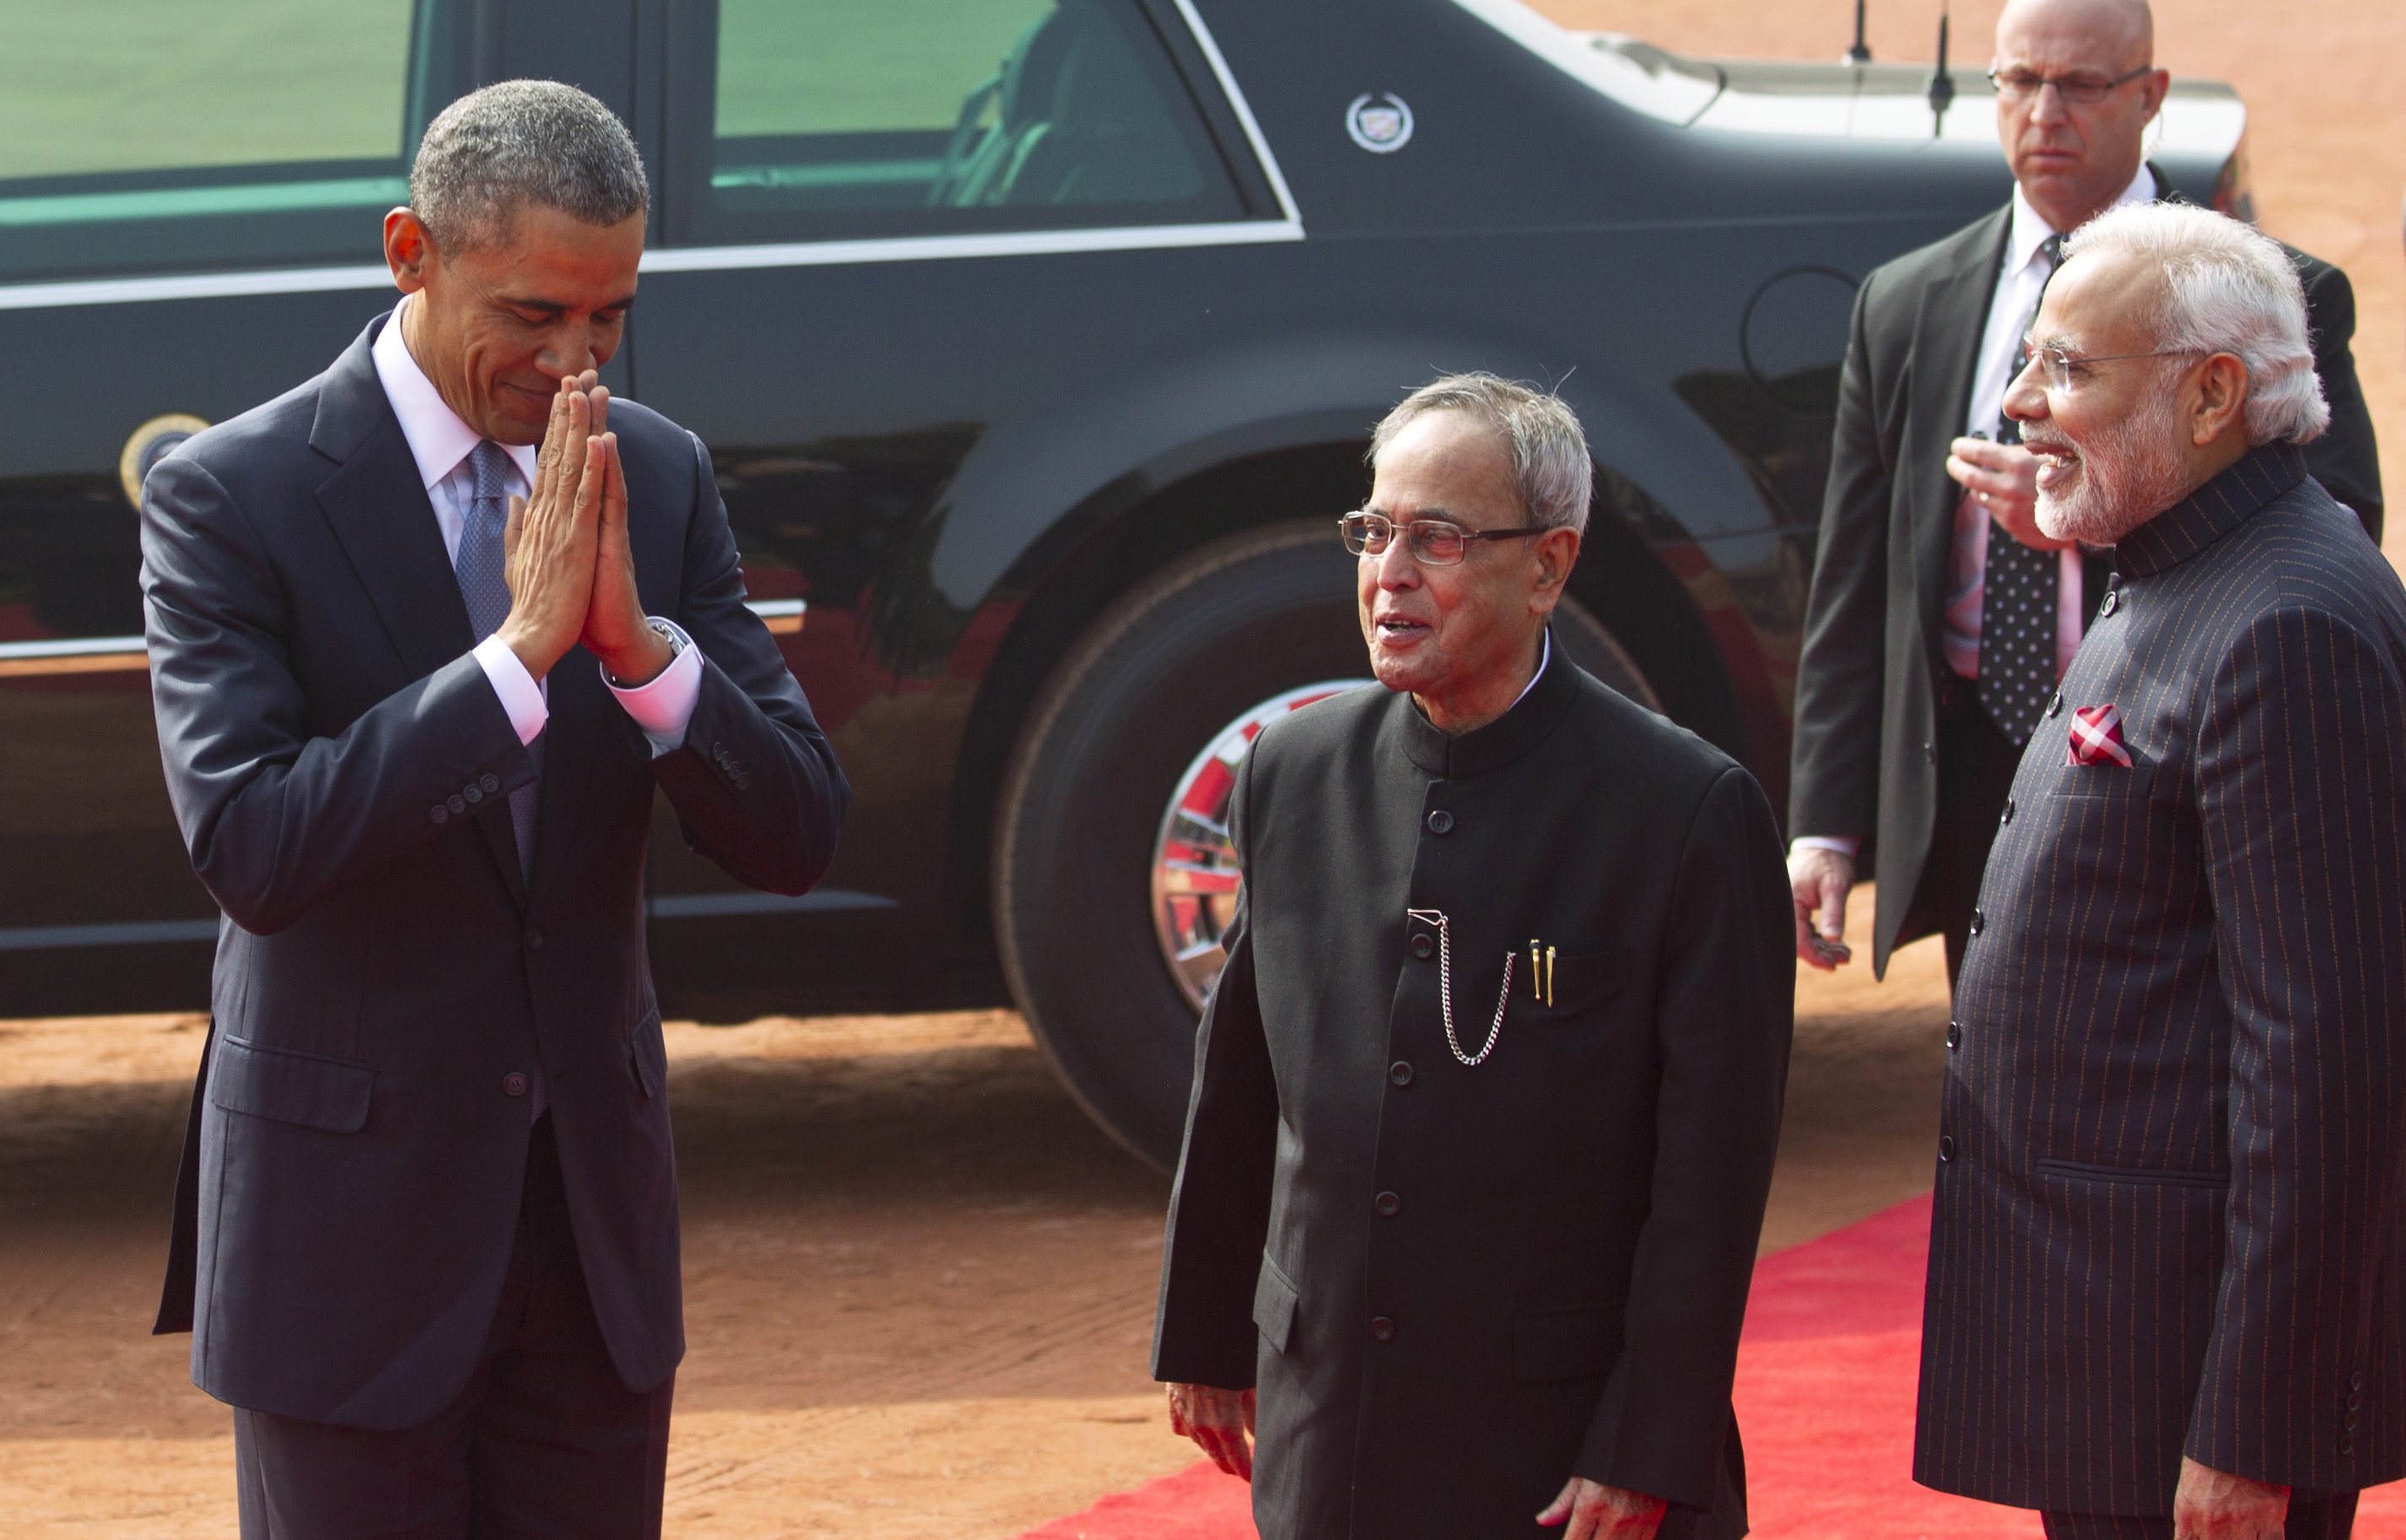 Obama received warmly in India, seeks policy advances